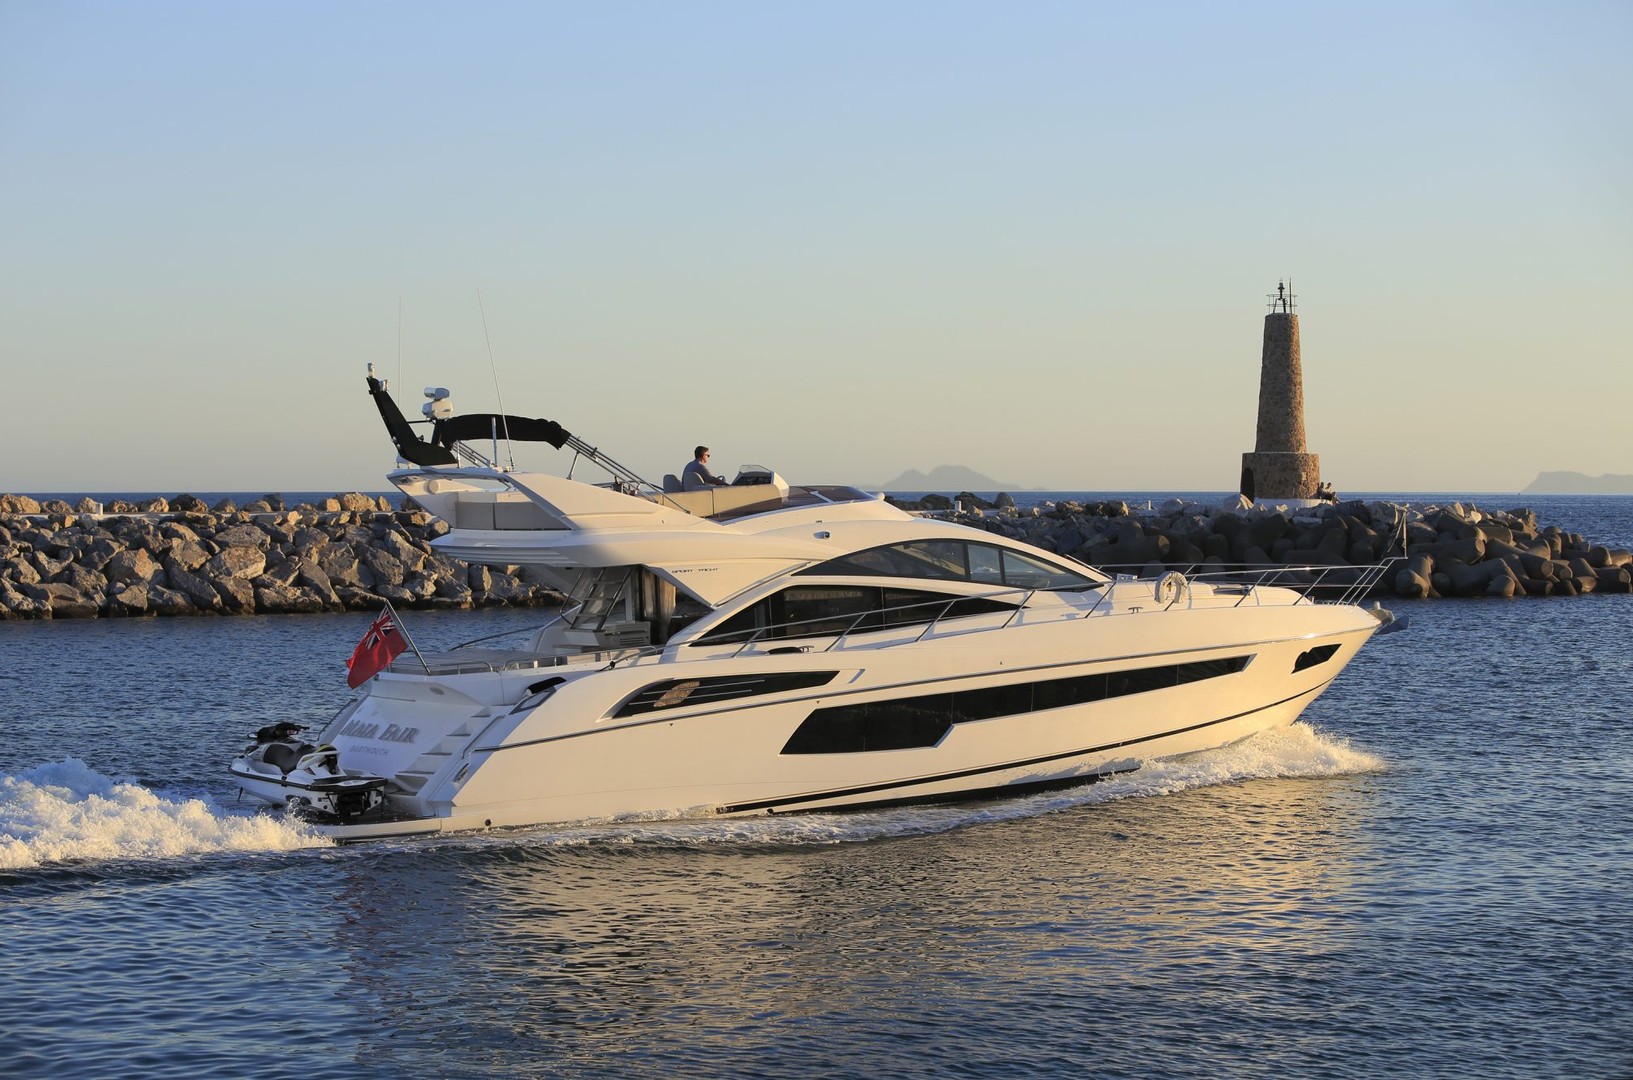 Yacht MAIA FAIR - Sunseeker 68 Sport Yacht for charter on the Costa del Sol